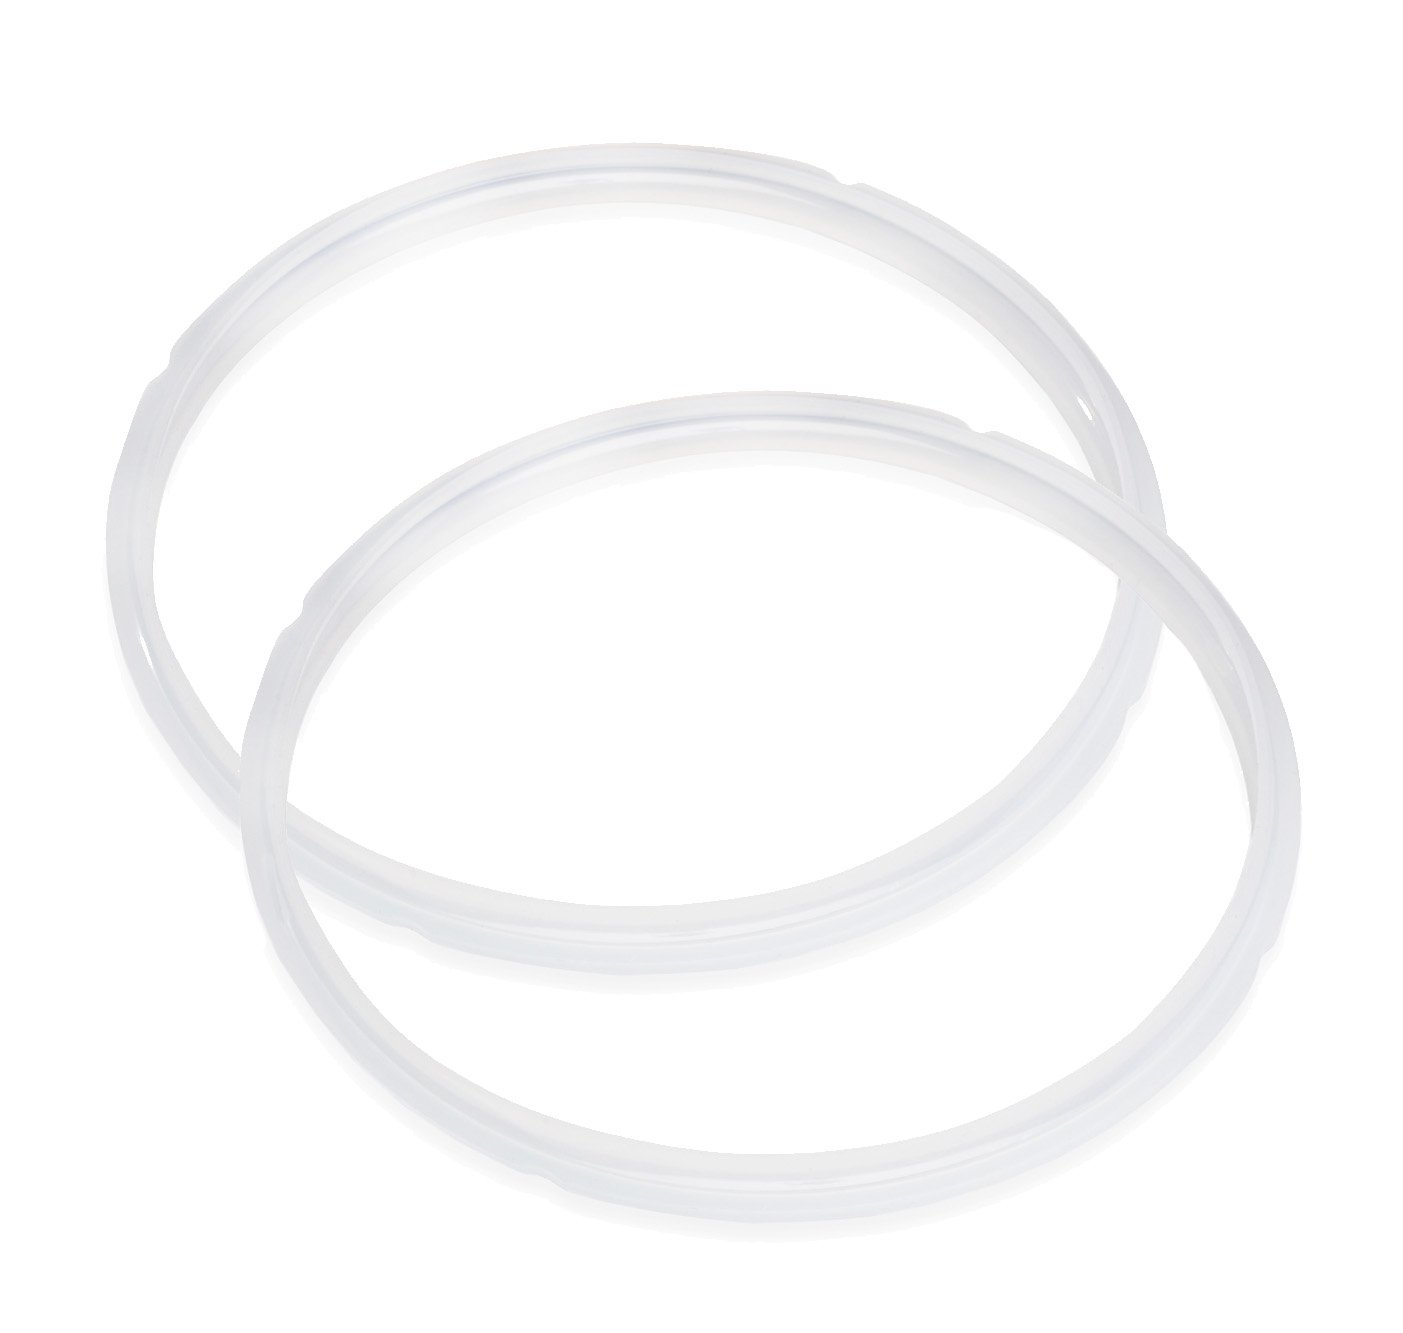 Sealing Ring - Silicone (Pack of 2) - BPA Free, Fits IP-DUO60, IP-LUX60, IP-DUO50, IP-LUX50, Smart-60, IP-CSG60 and IP-CSG50